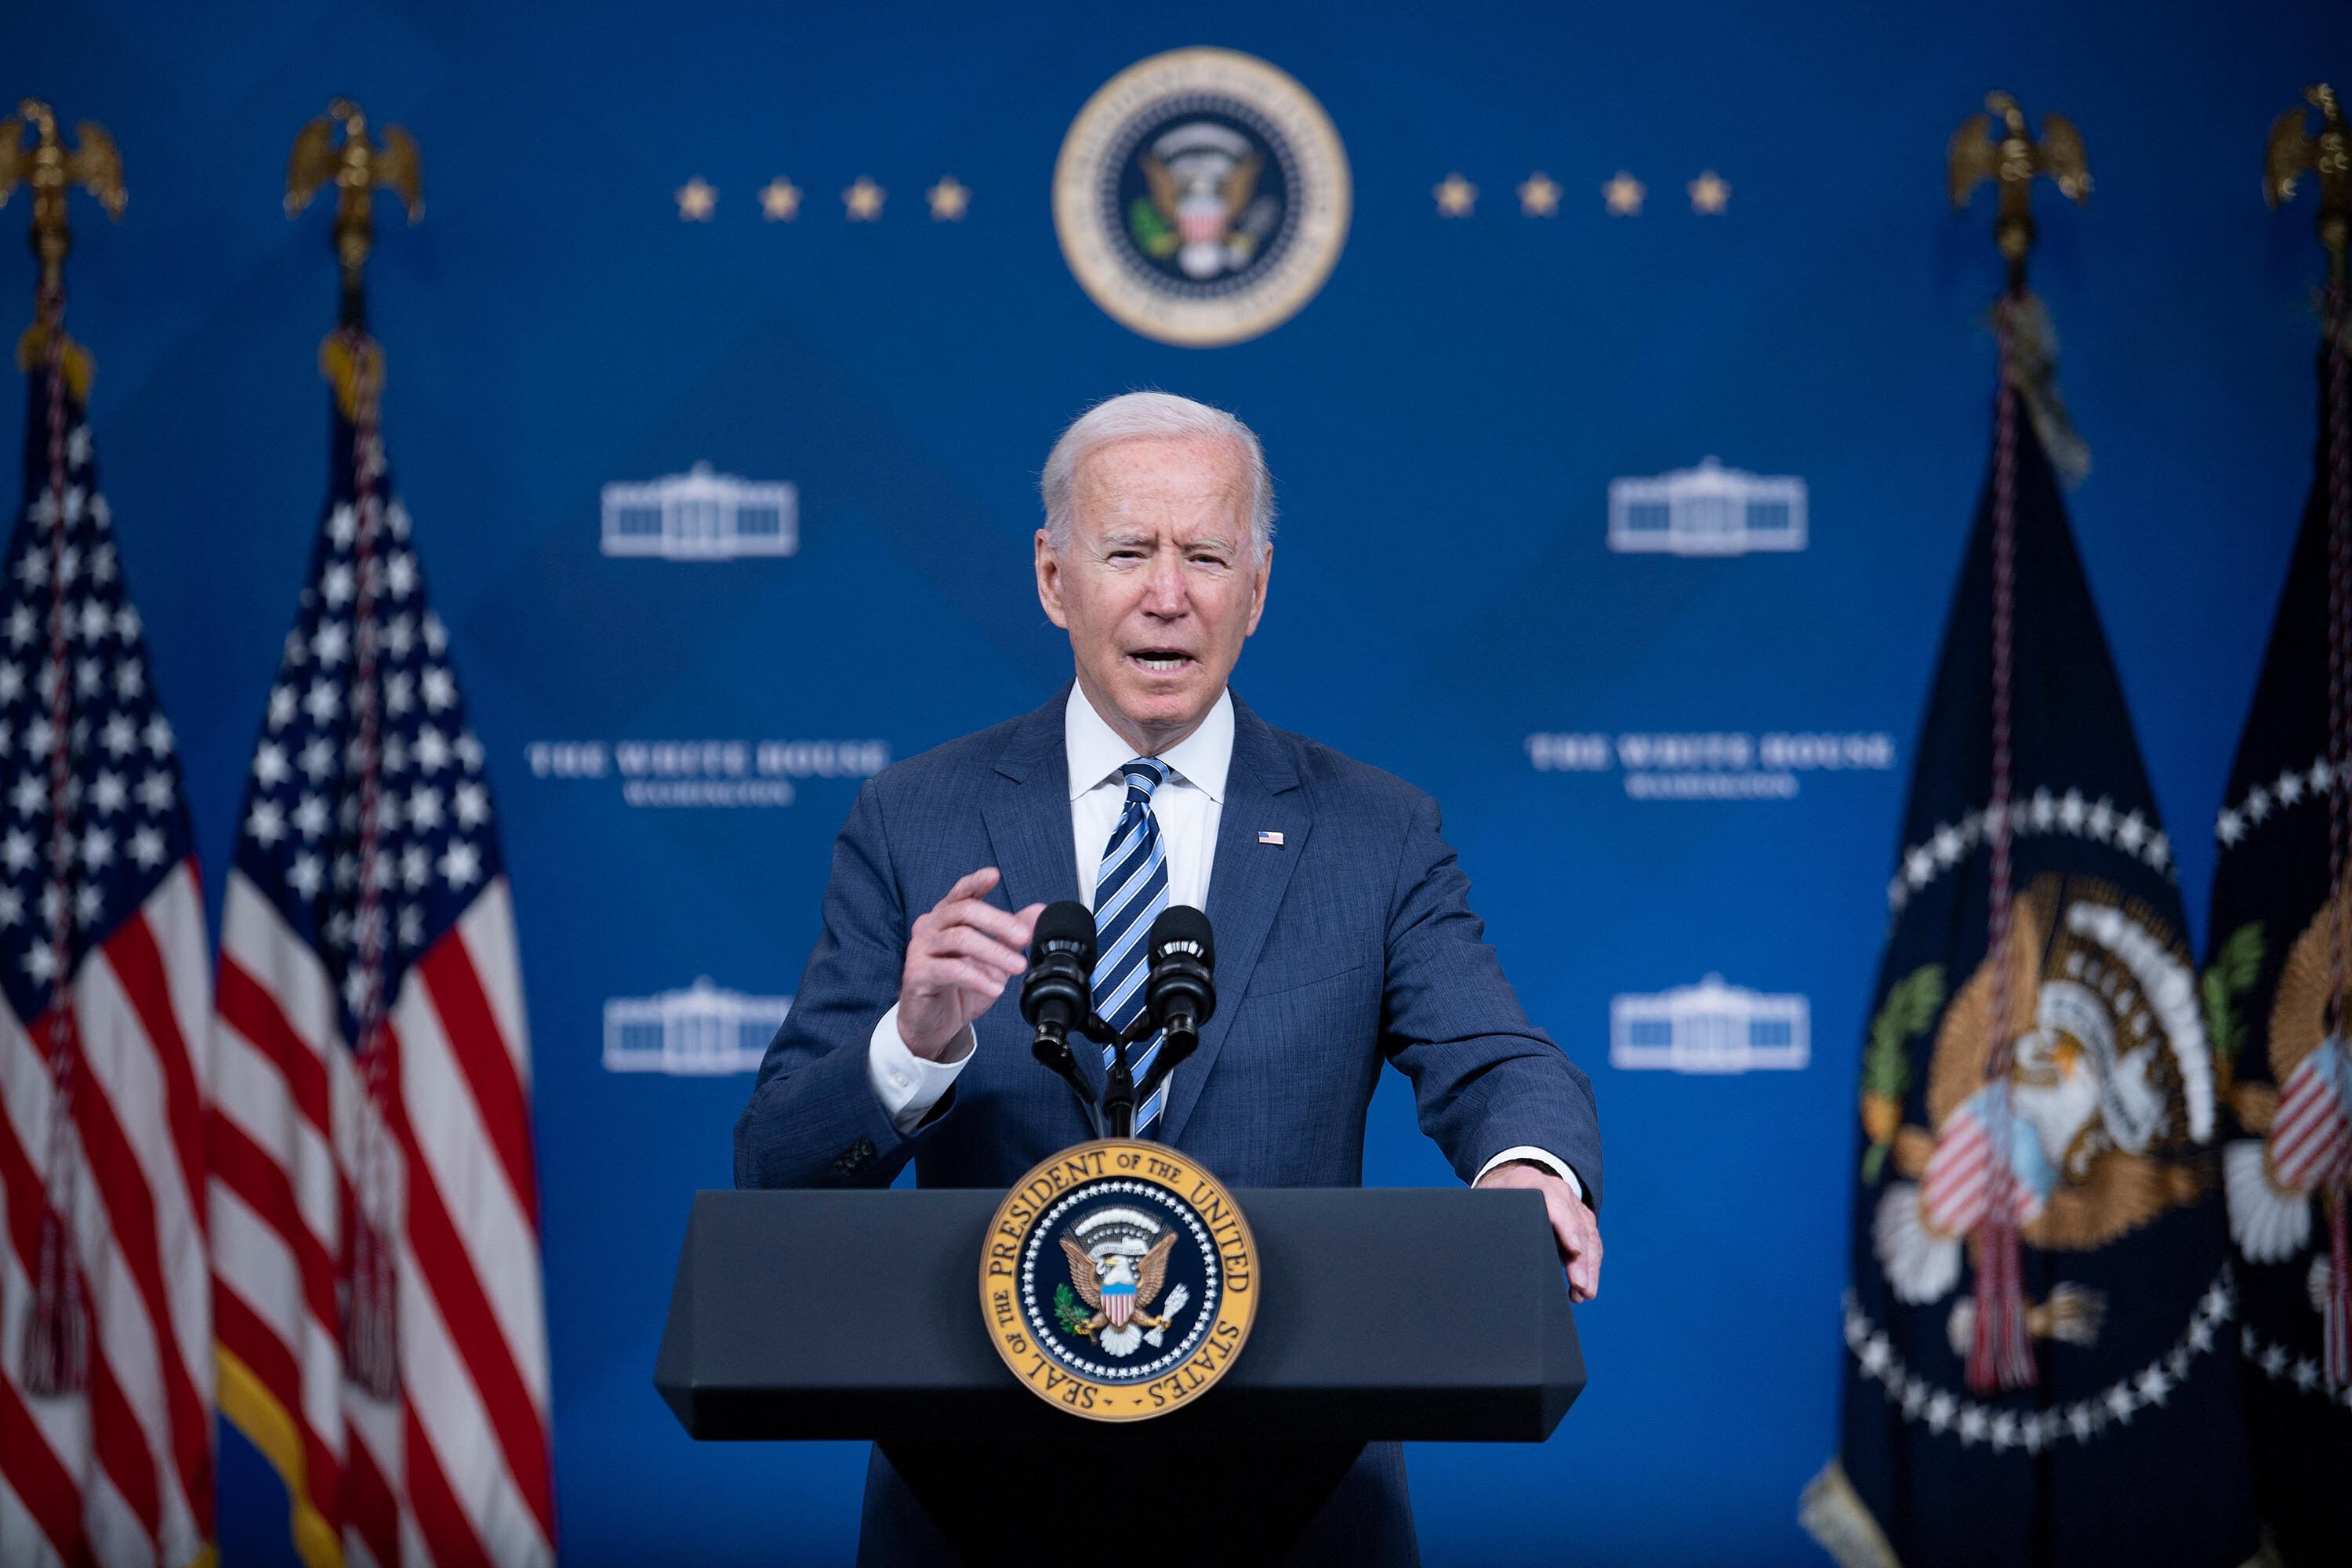 Biden to travel to California 'early next week' to campaign for Newsom ahead of recall vote